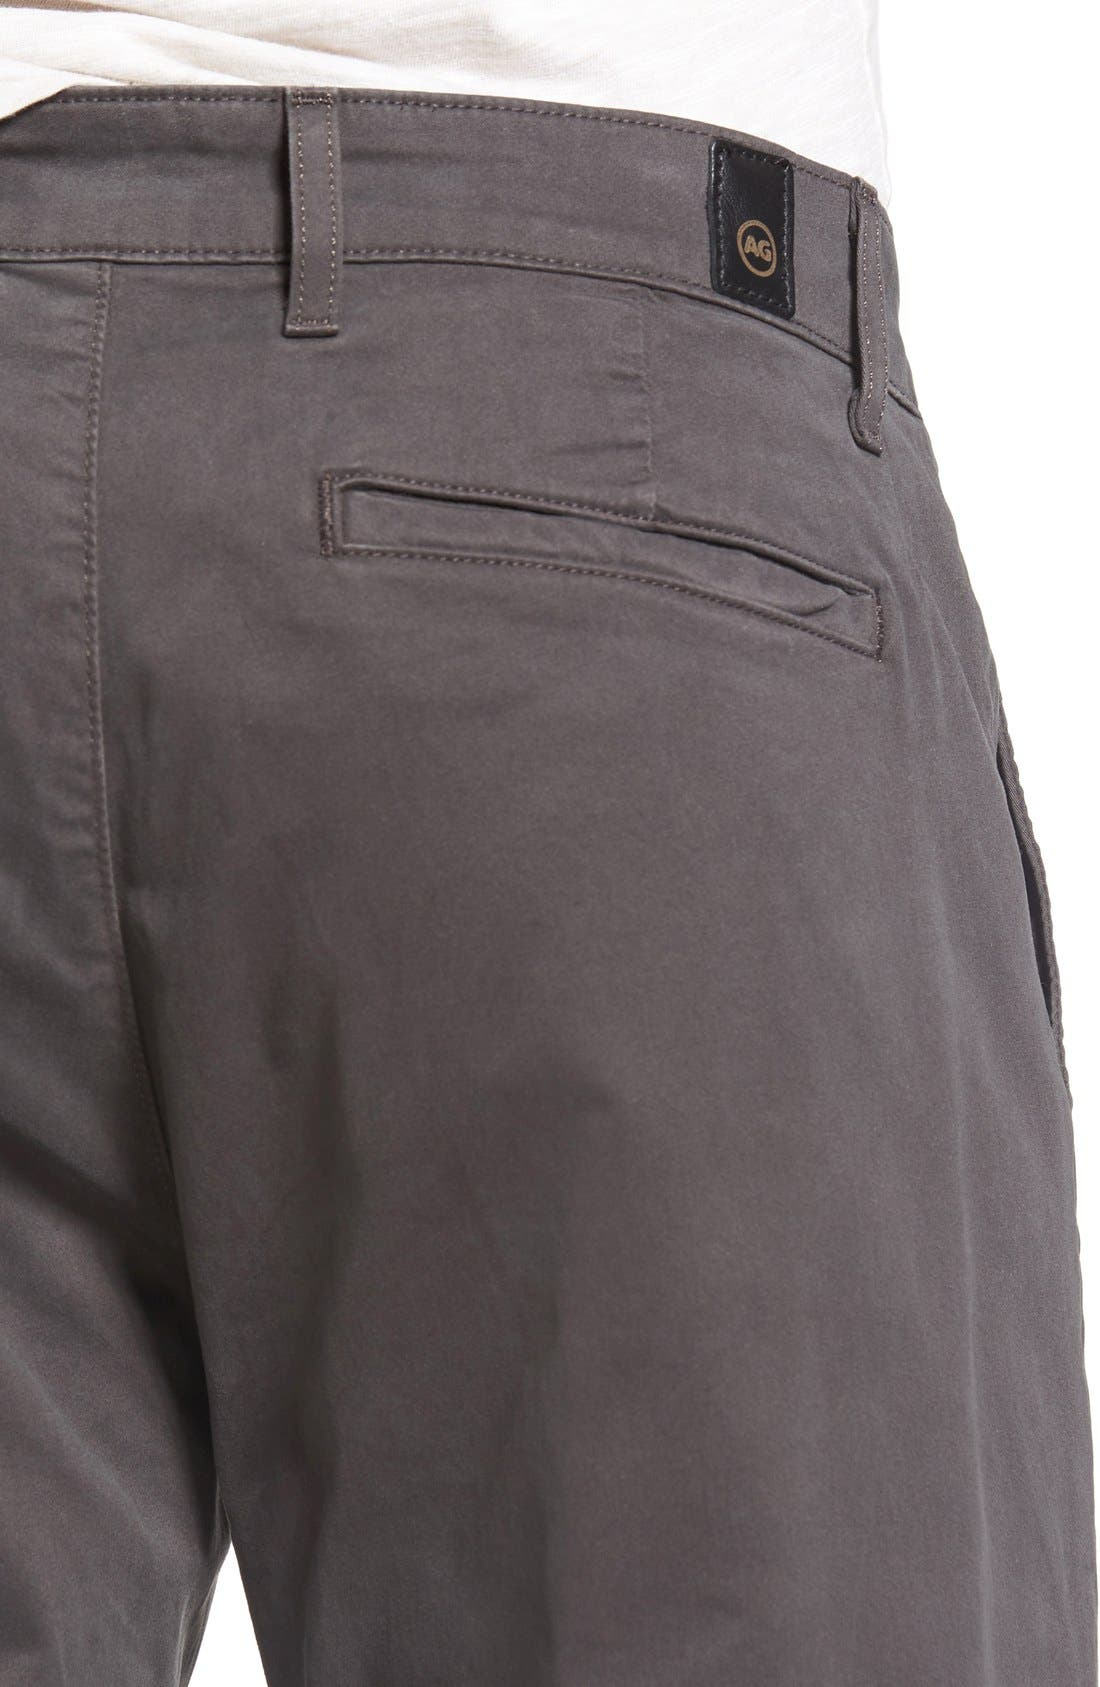 'The Lux' Tailored Straight Leg Chinos,                             Alternate thumbnail 46, color,